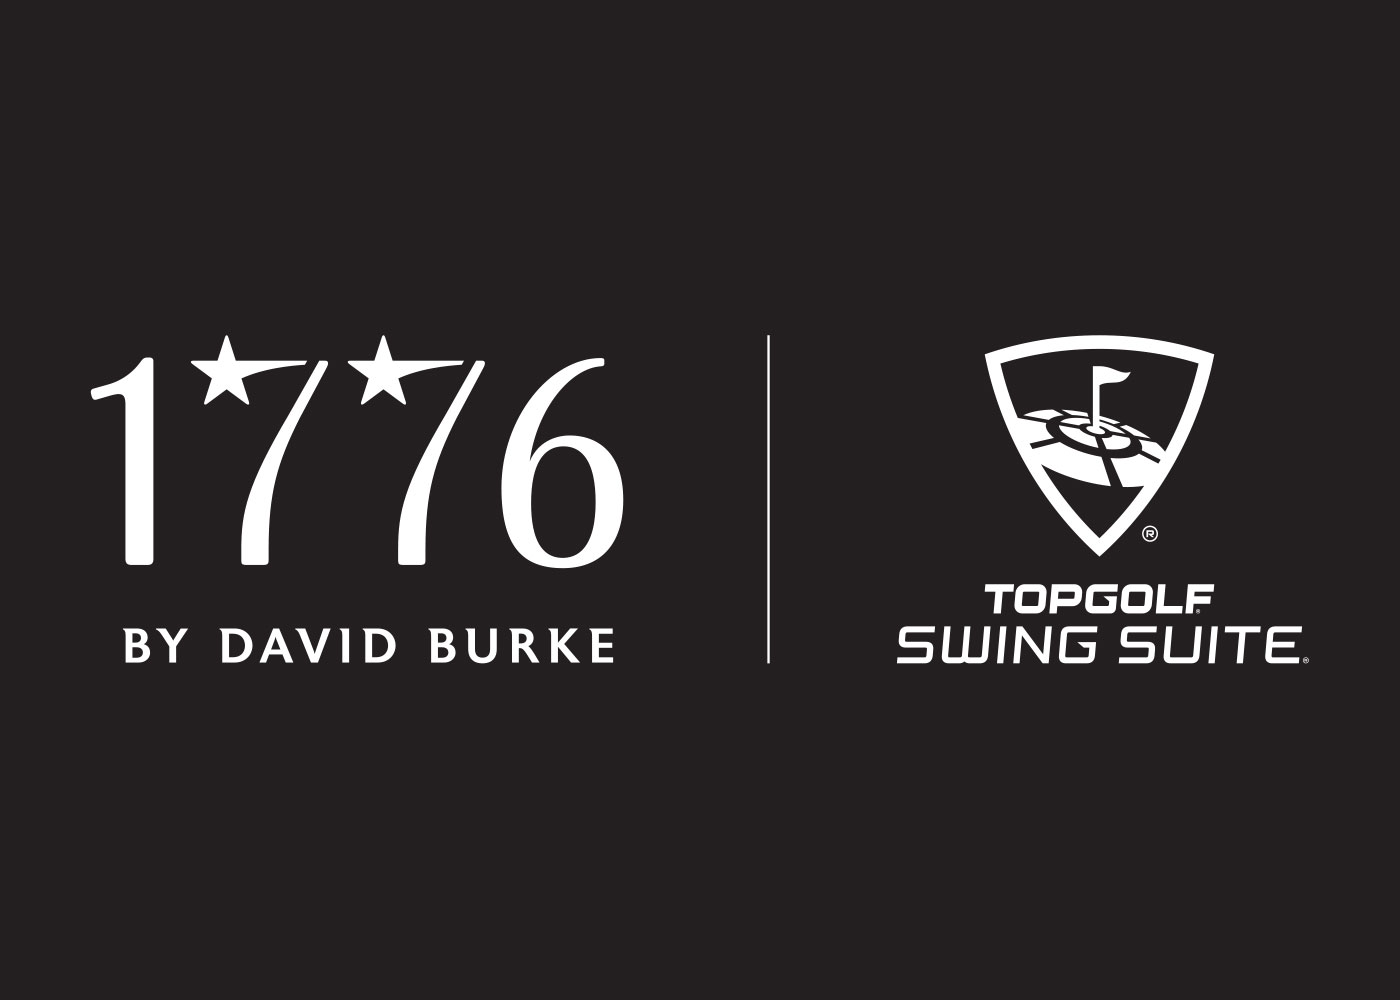 1776 by David Burke Featuring Topgolf Swing Suite